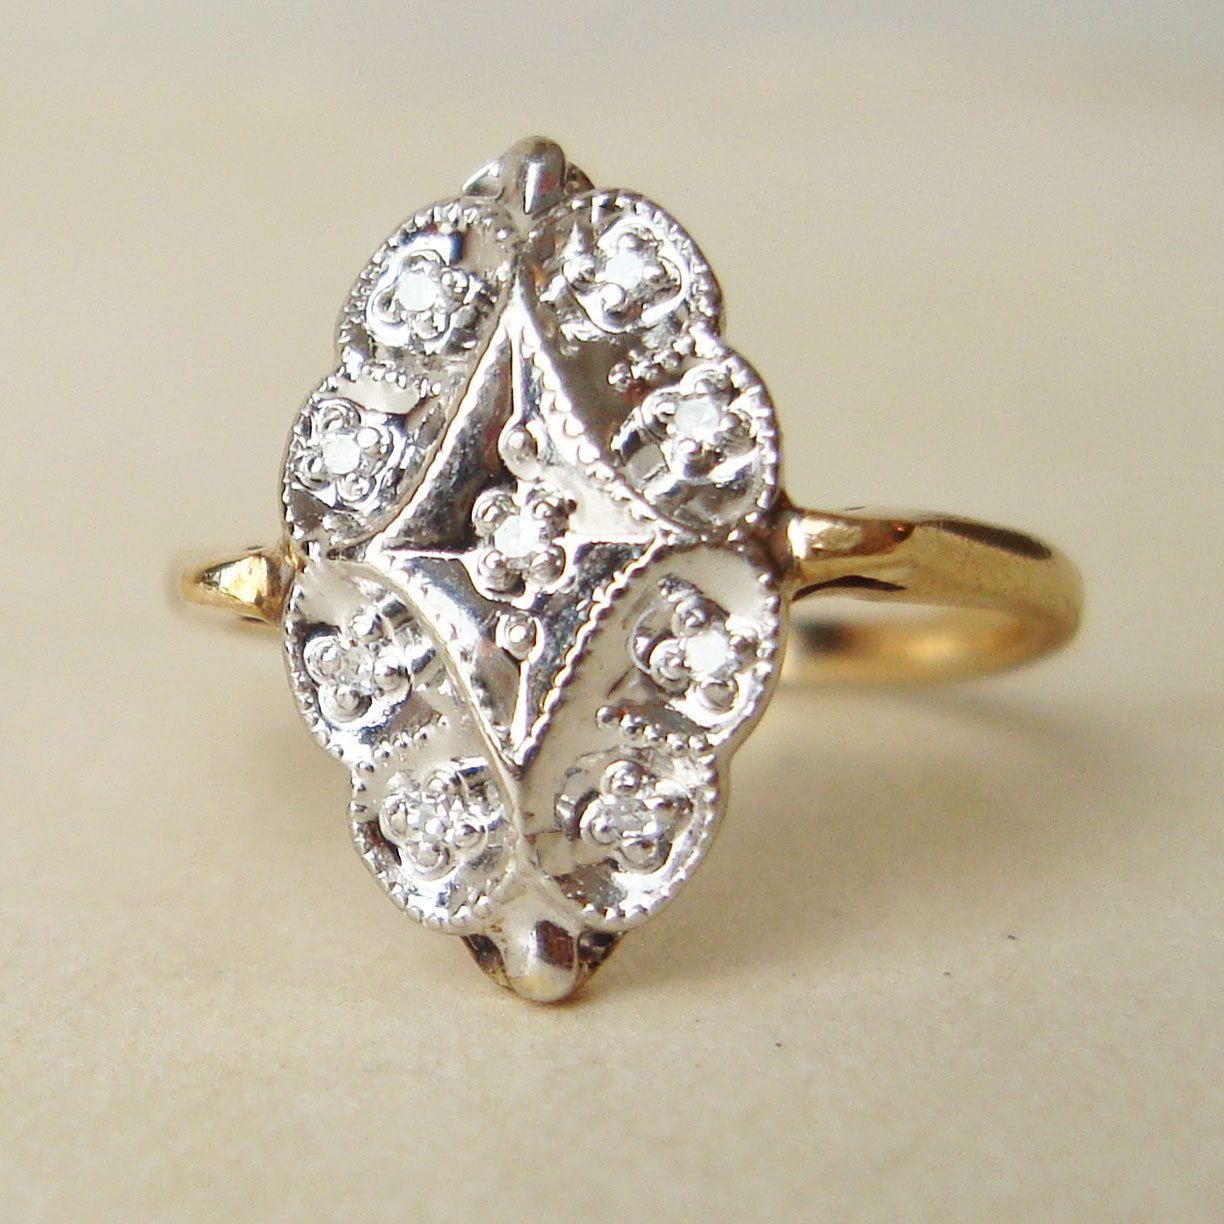 Vintage engagement ring art deco style k gold diamond ring